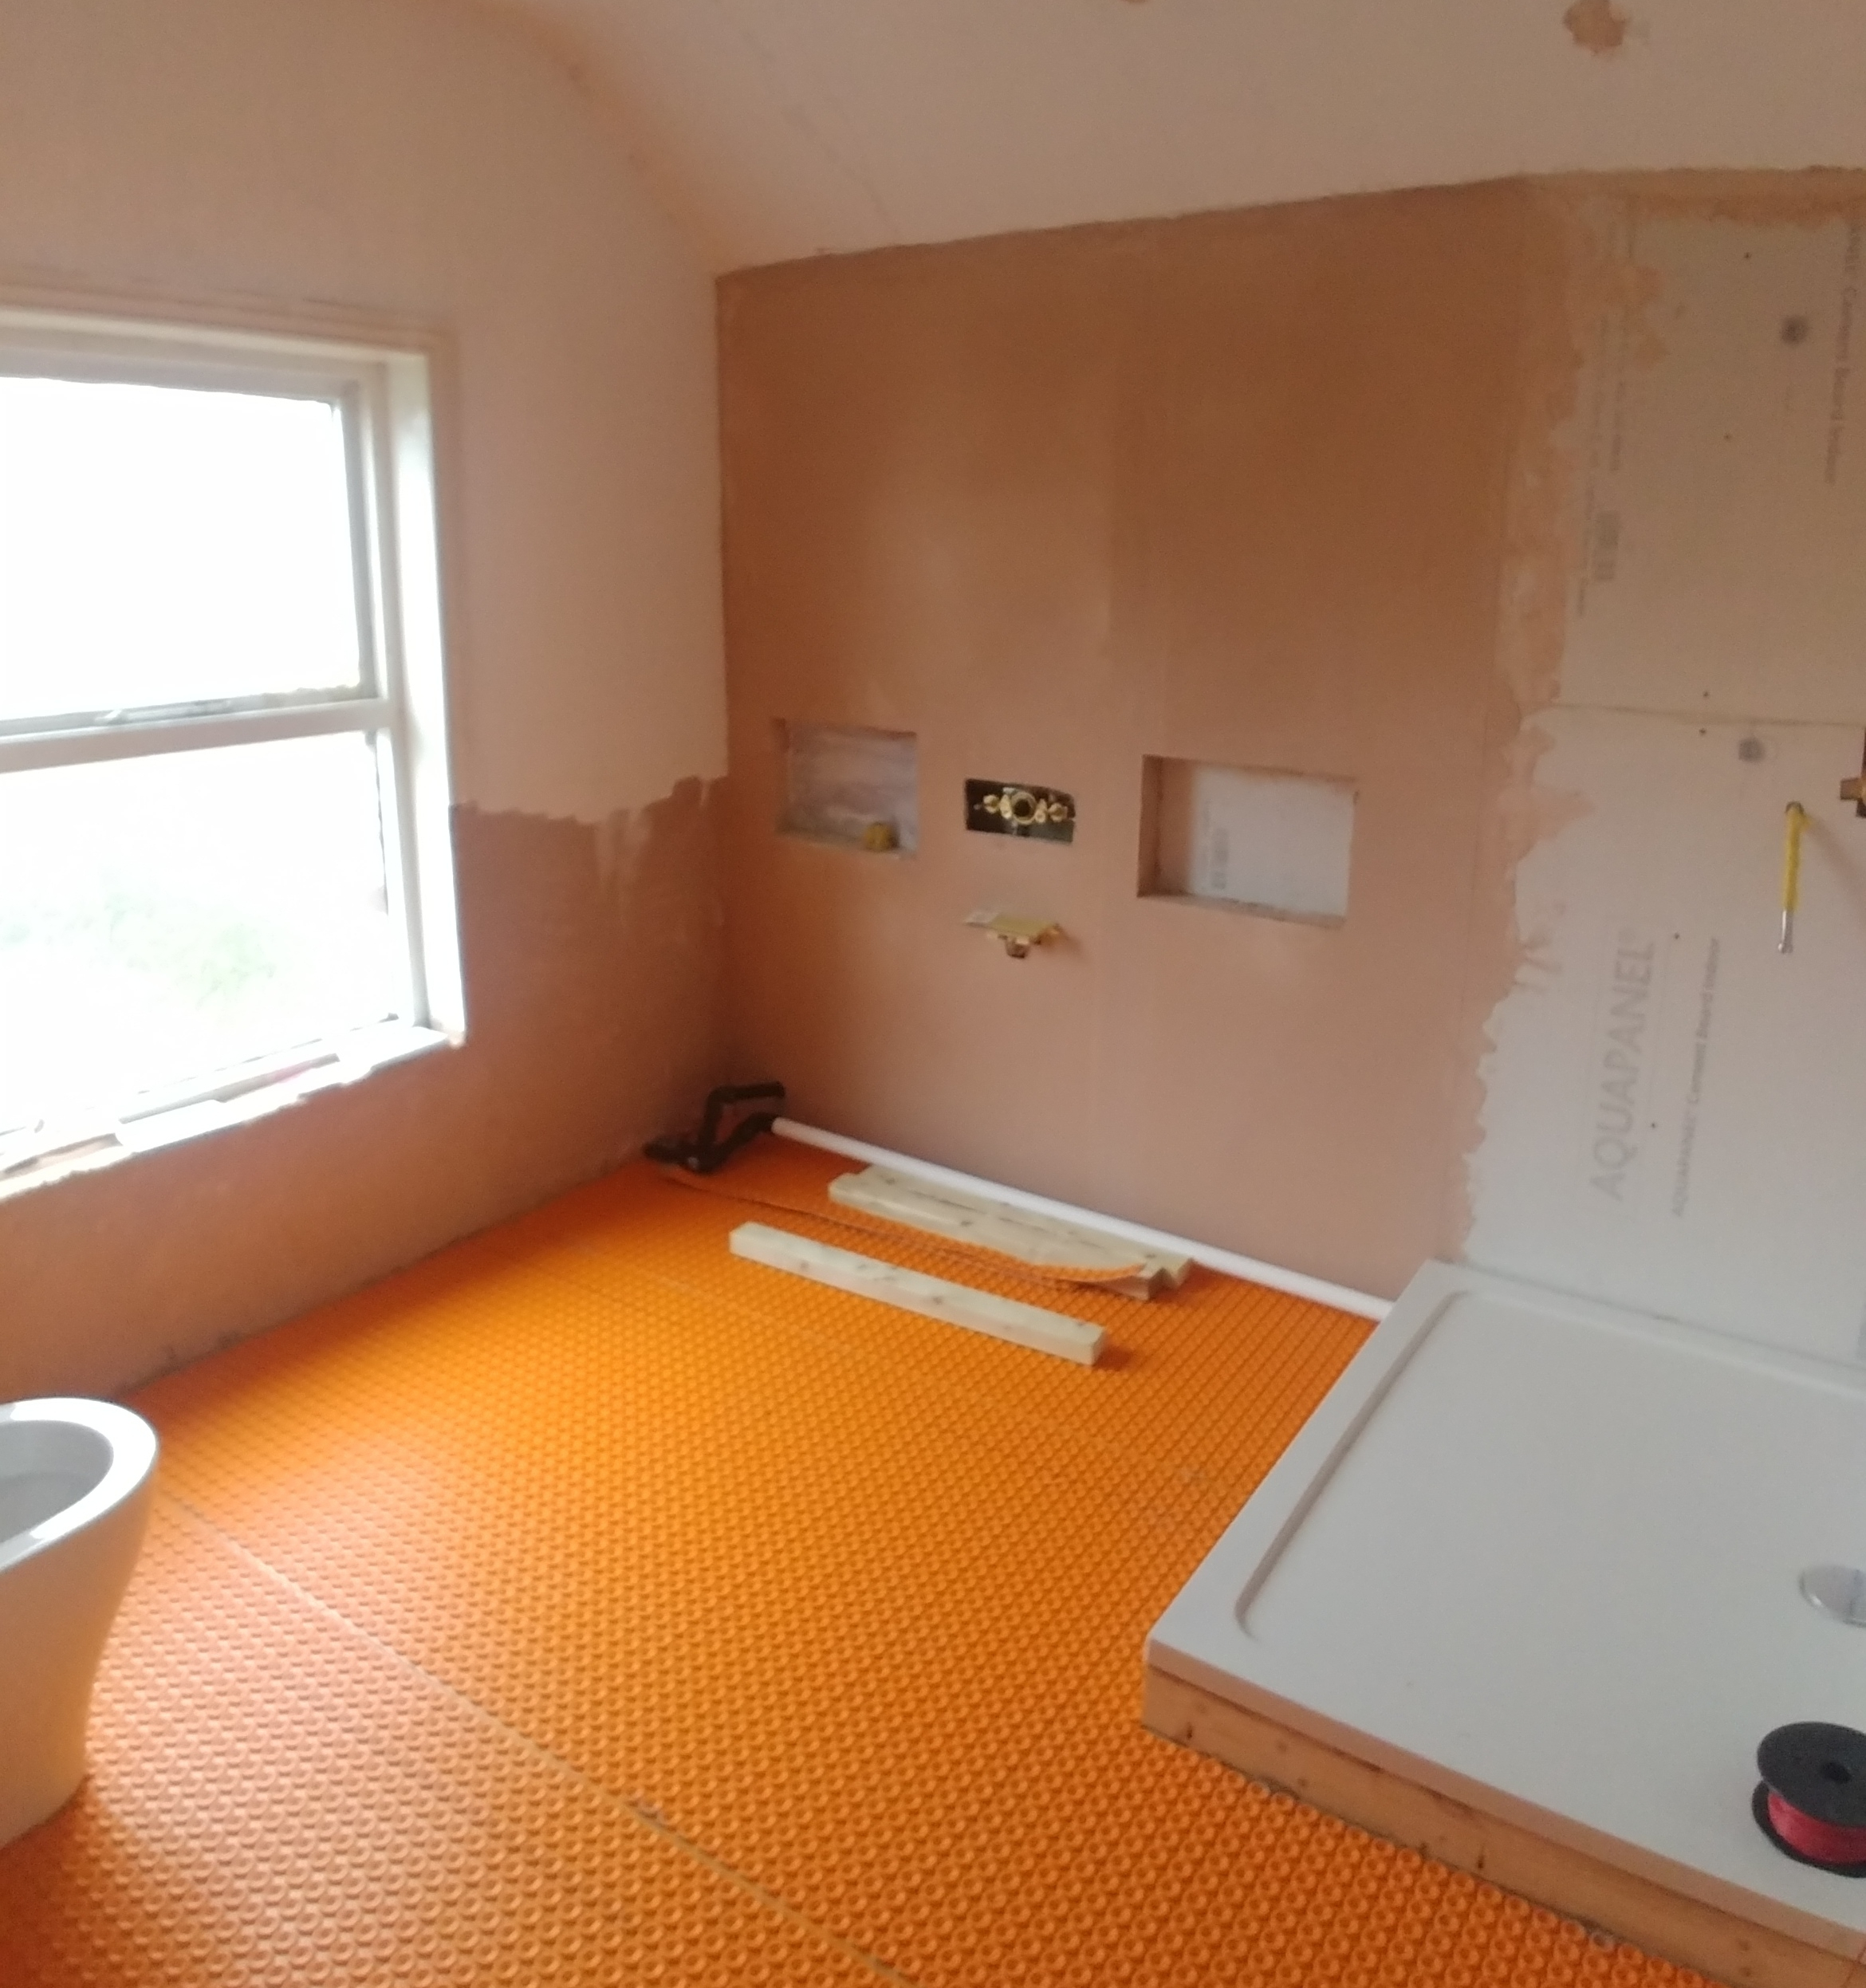 Ditra matting for the underfloor heating wire, plus shower base.